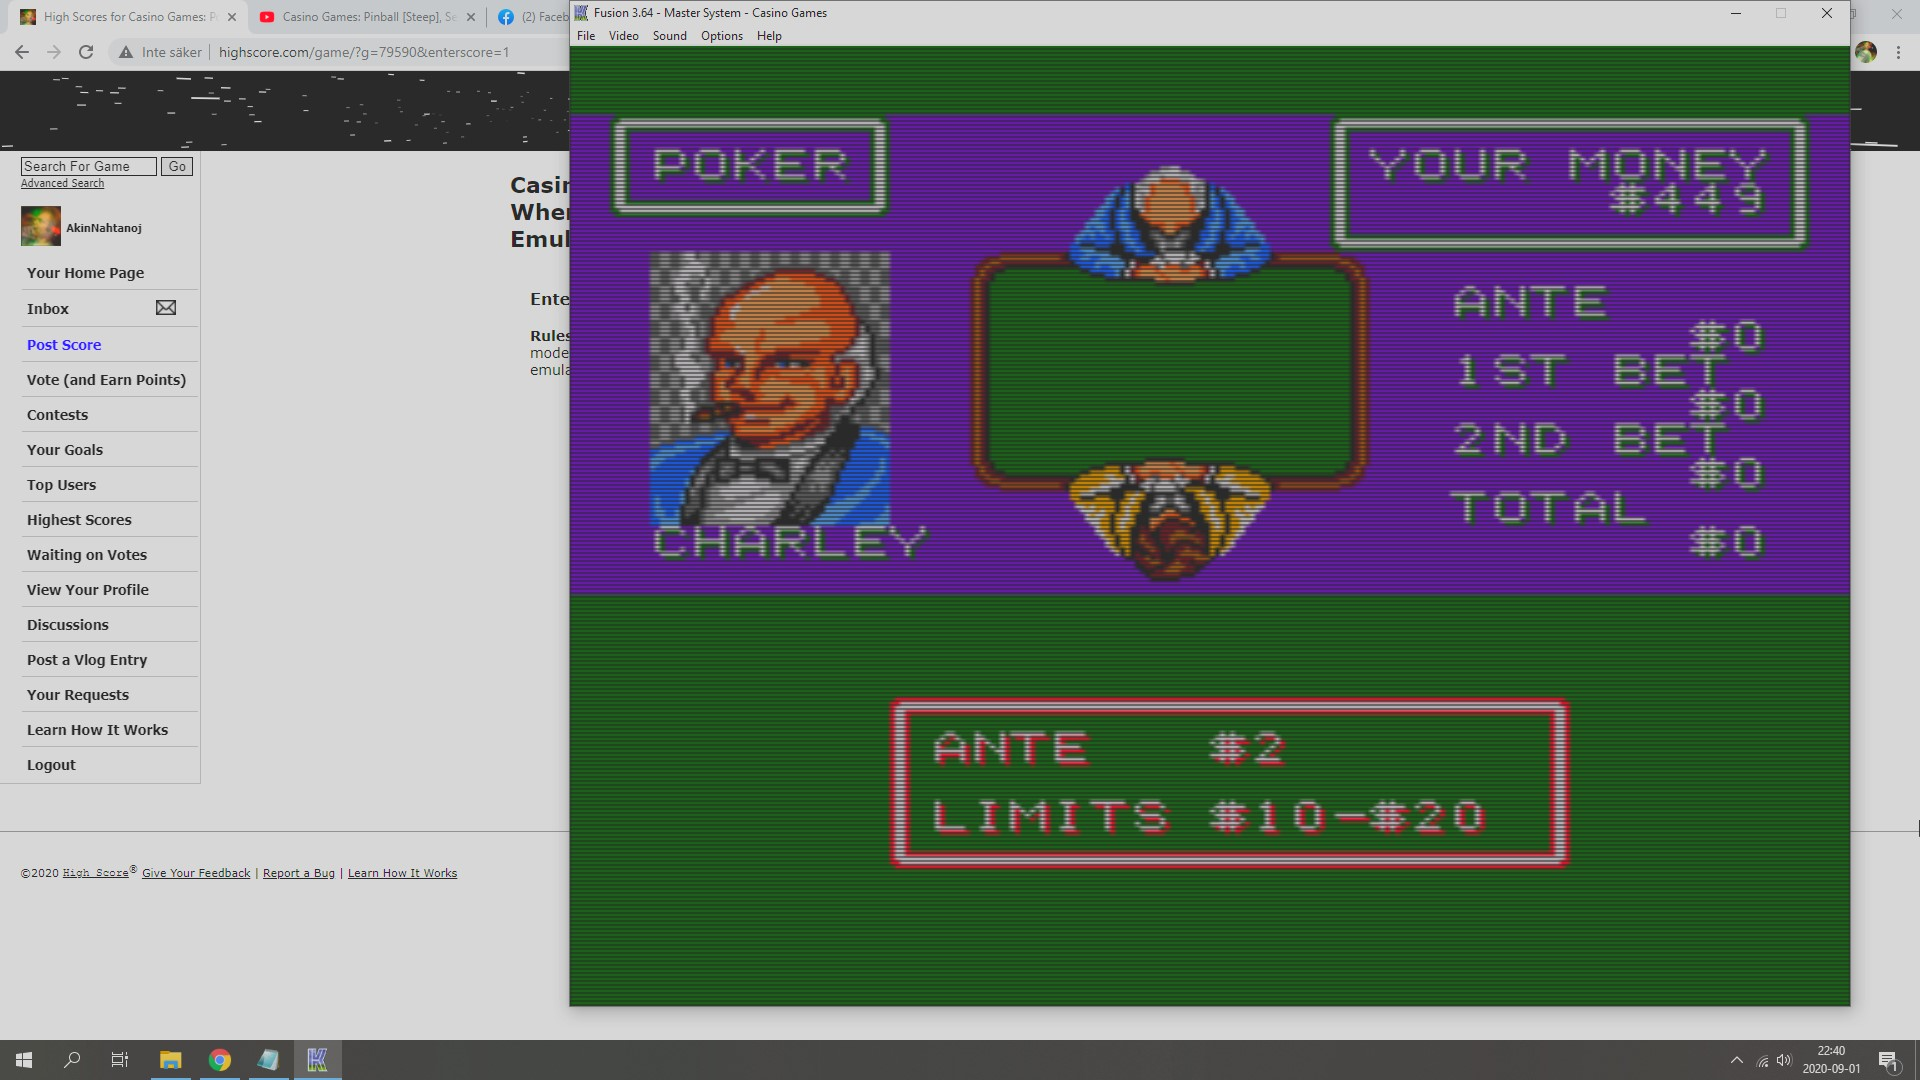 AkinNahtanoj: Casino Games: Poker [Opponent Charley] [Dollars Whenever You Stop Playing] (Sega Master System Emulated) 449 points on 2020-09-01 15:47:50